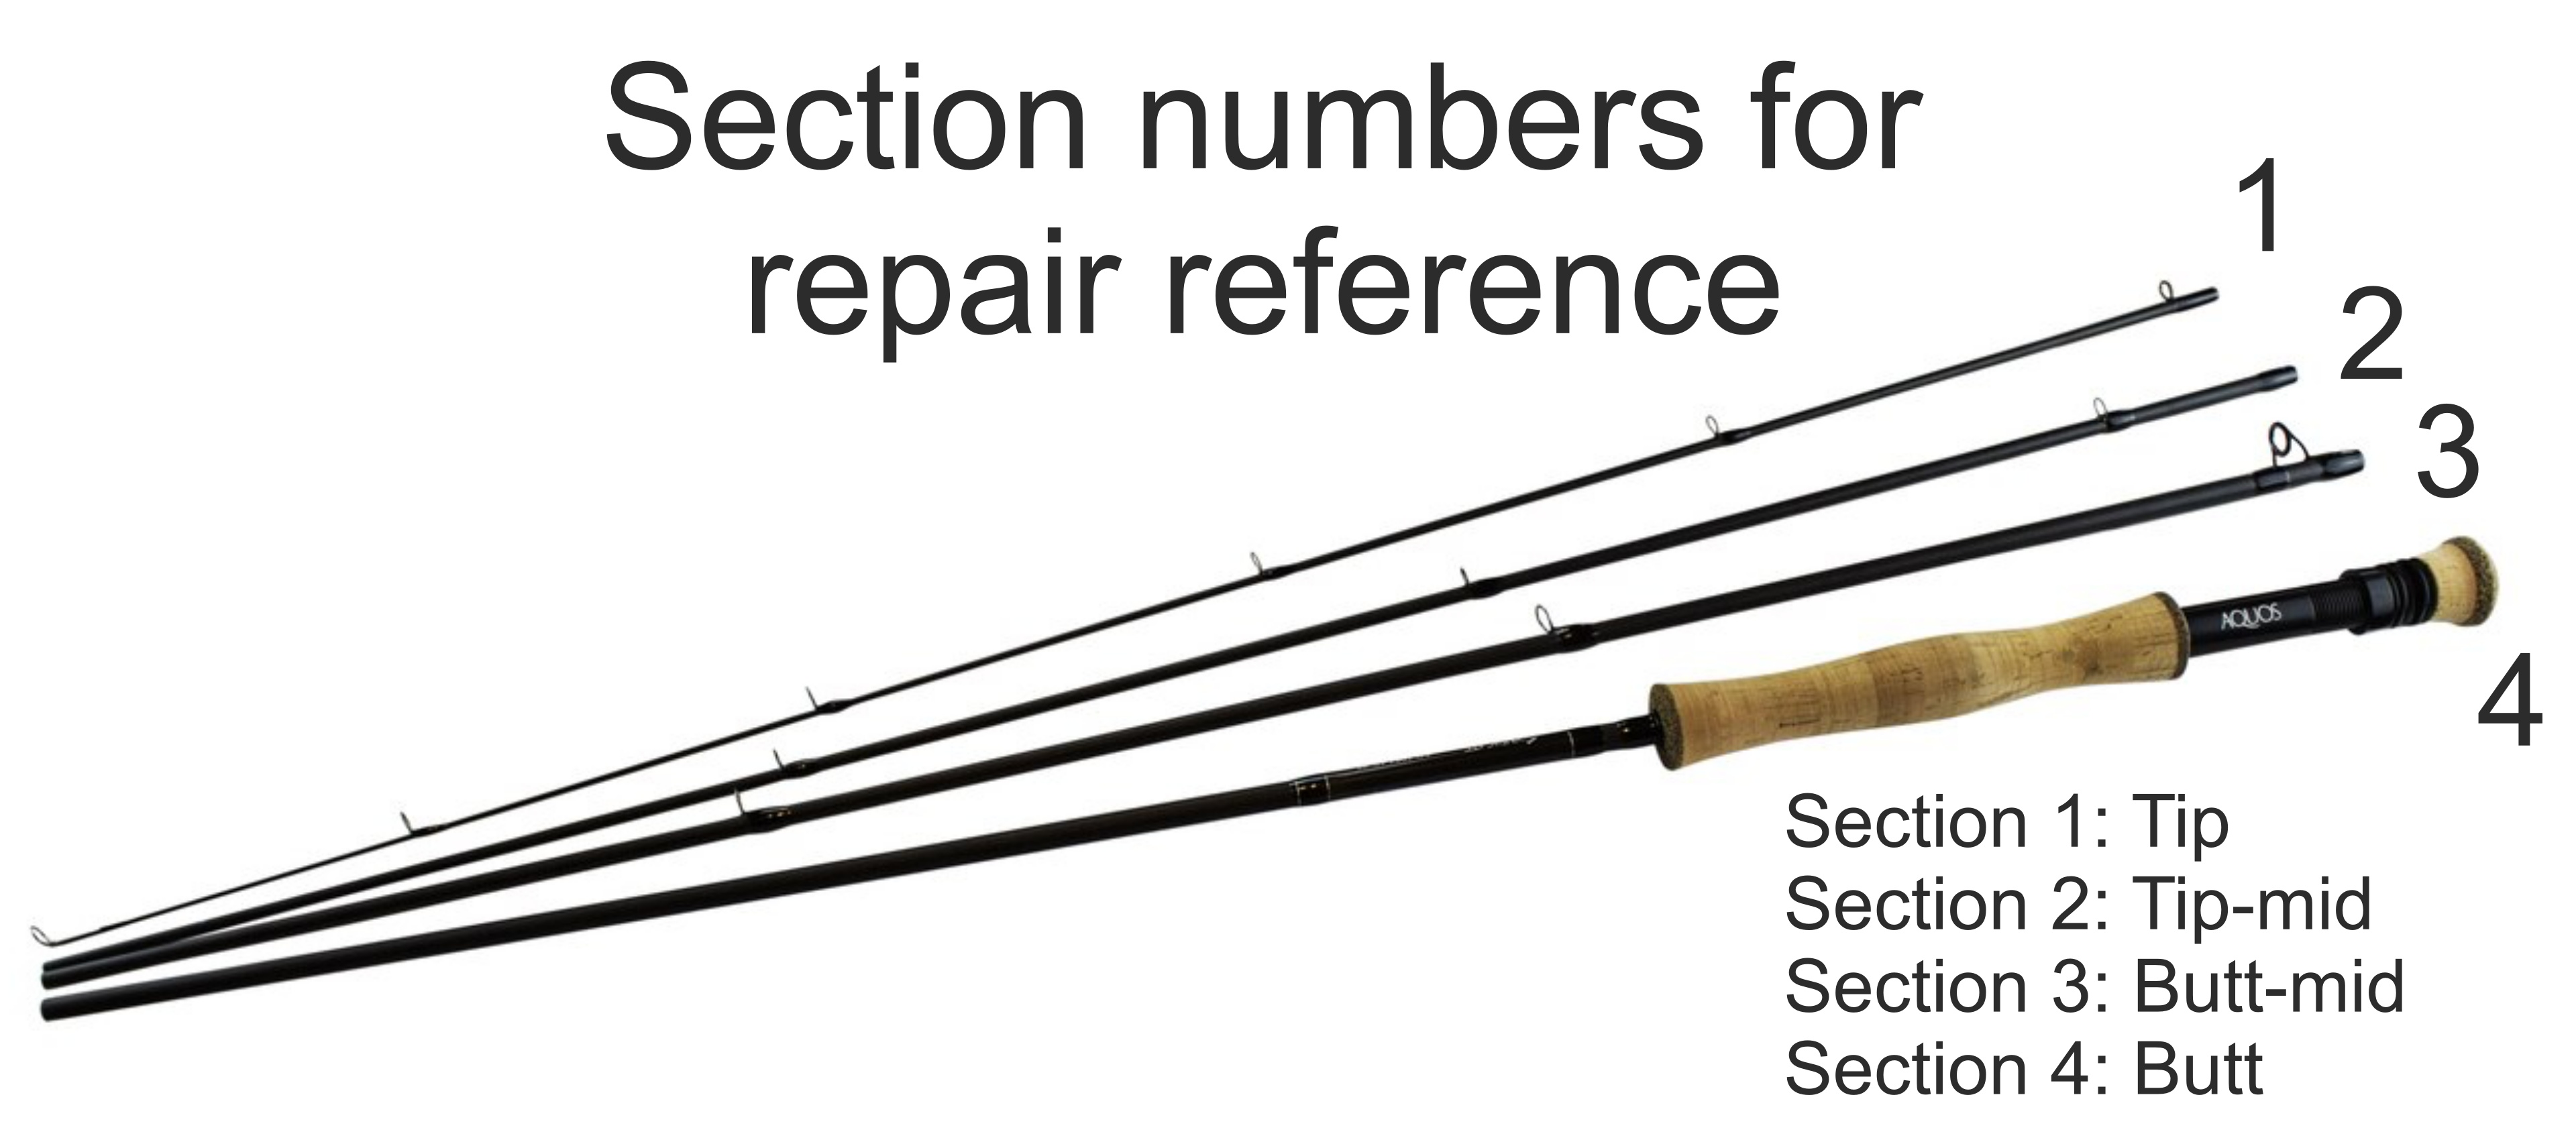 rod-section-reference.jpg